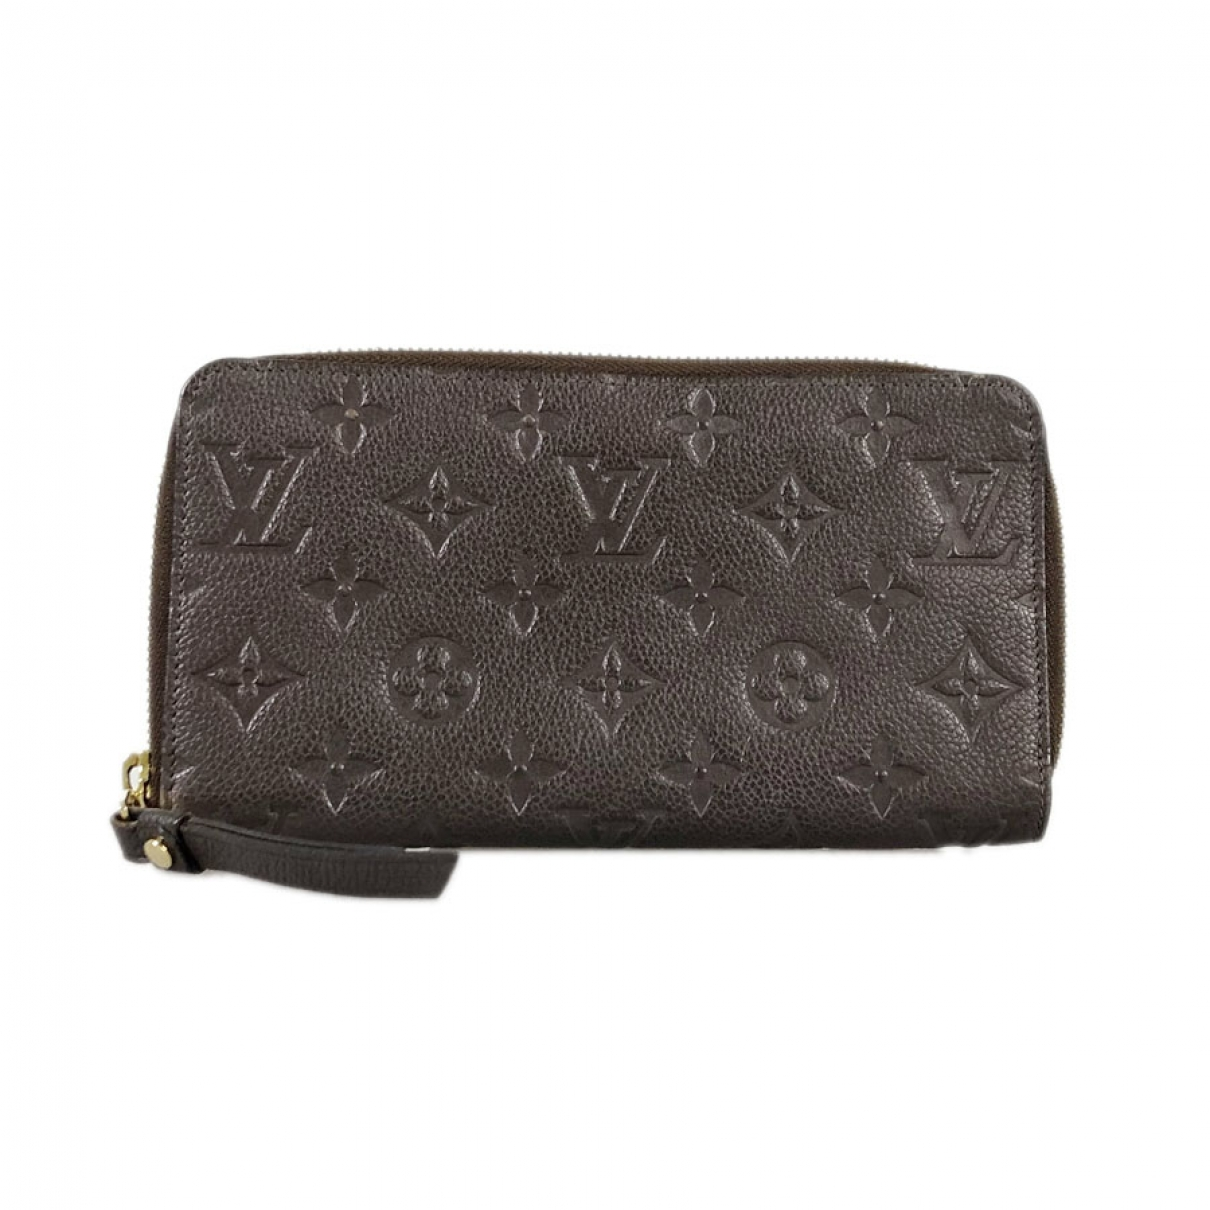 Cartera Zippy de Cuero Louis Vuitton